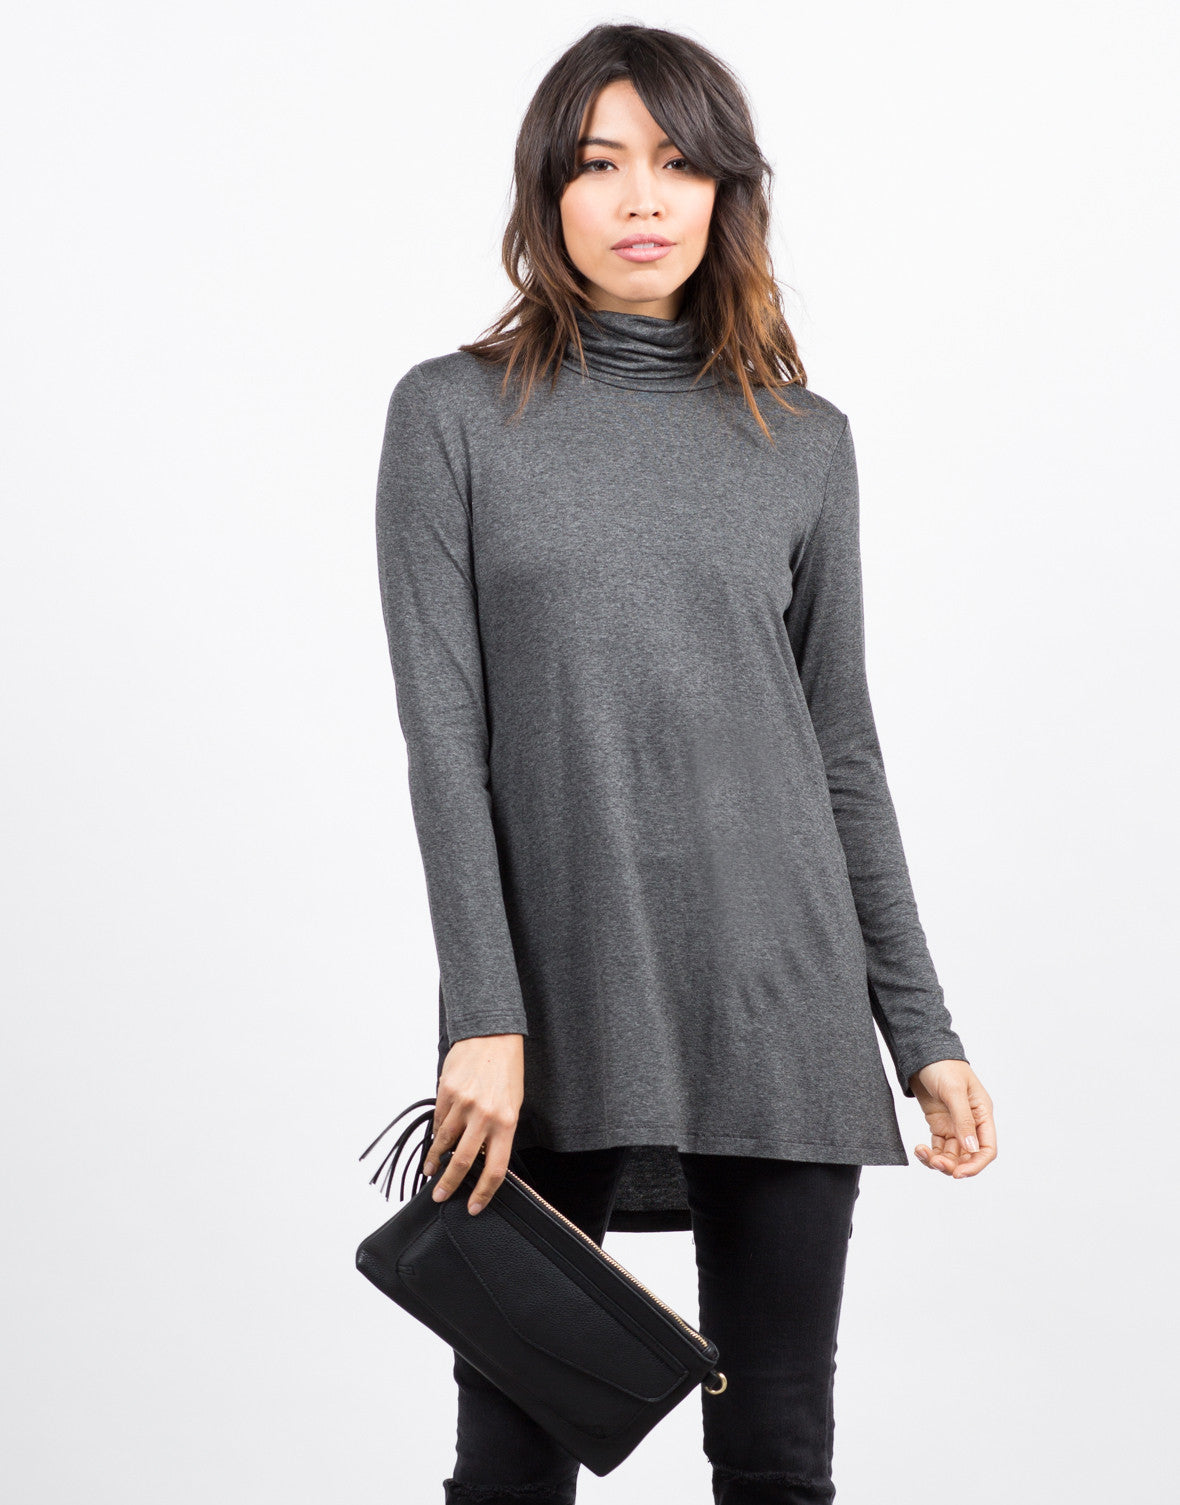 Front View of Turtleneck Long Sleeve Top